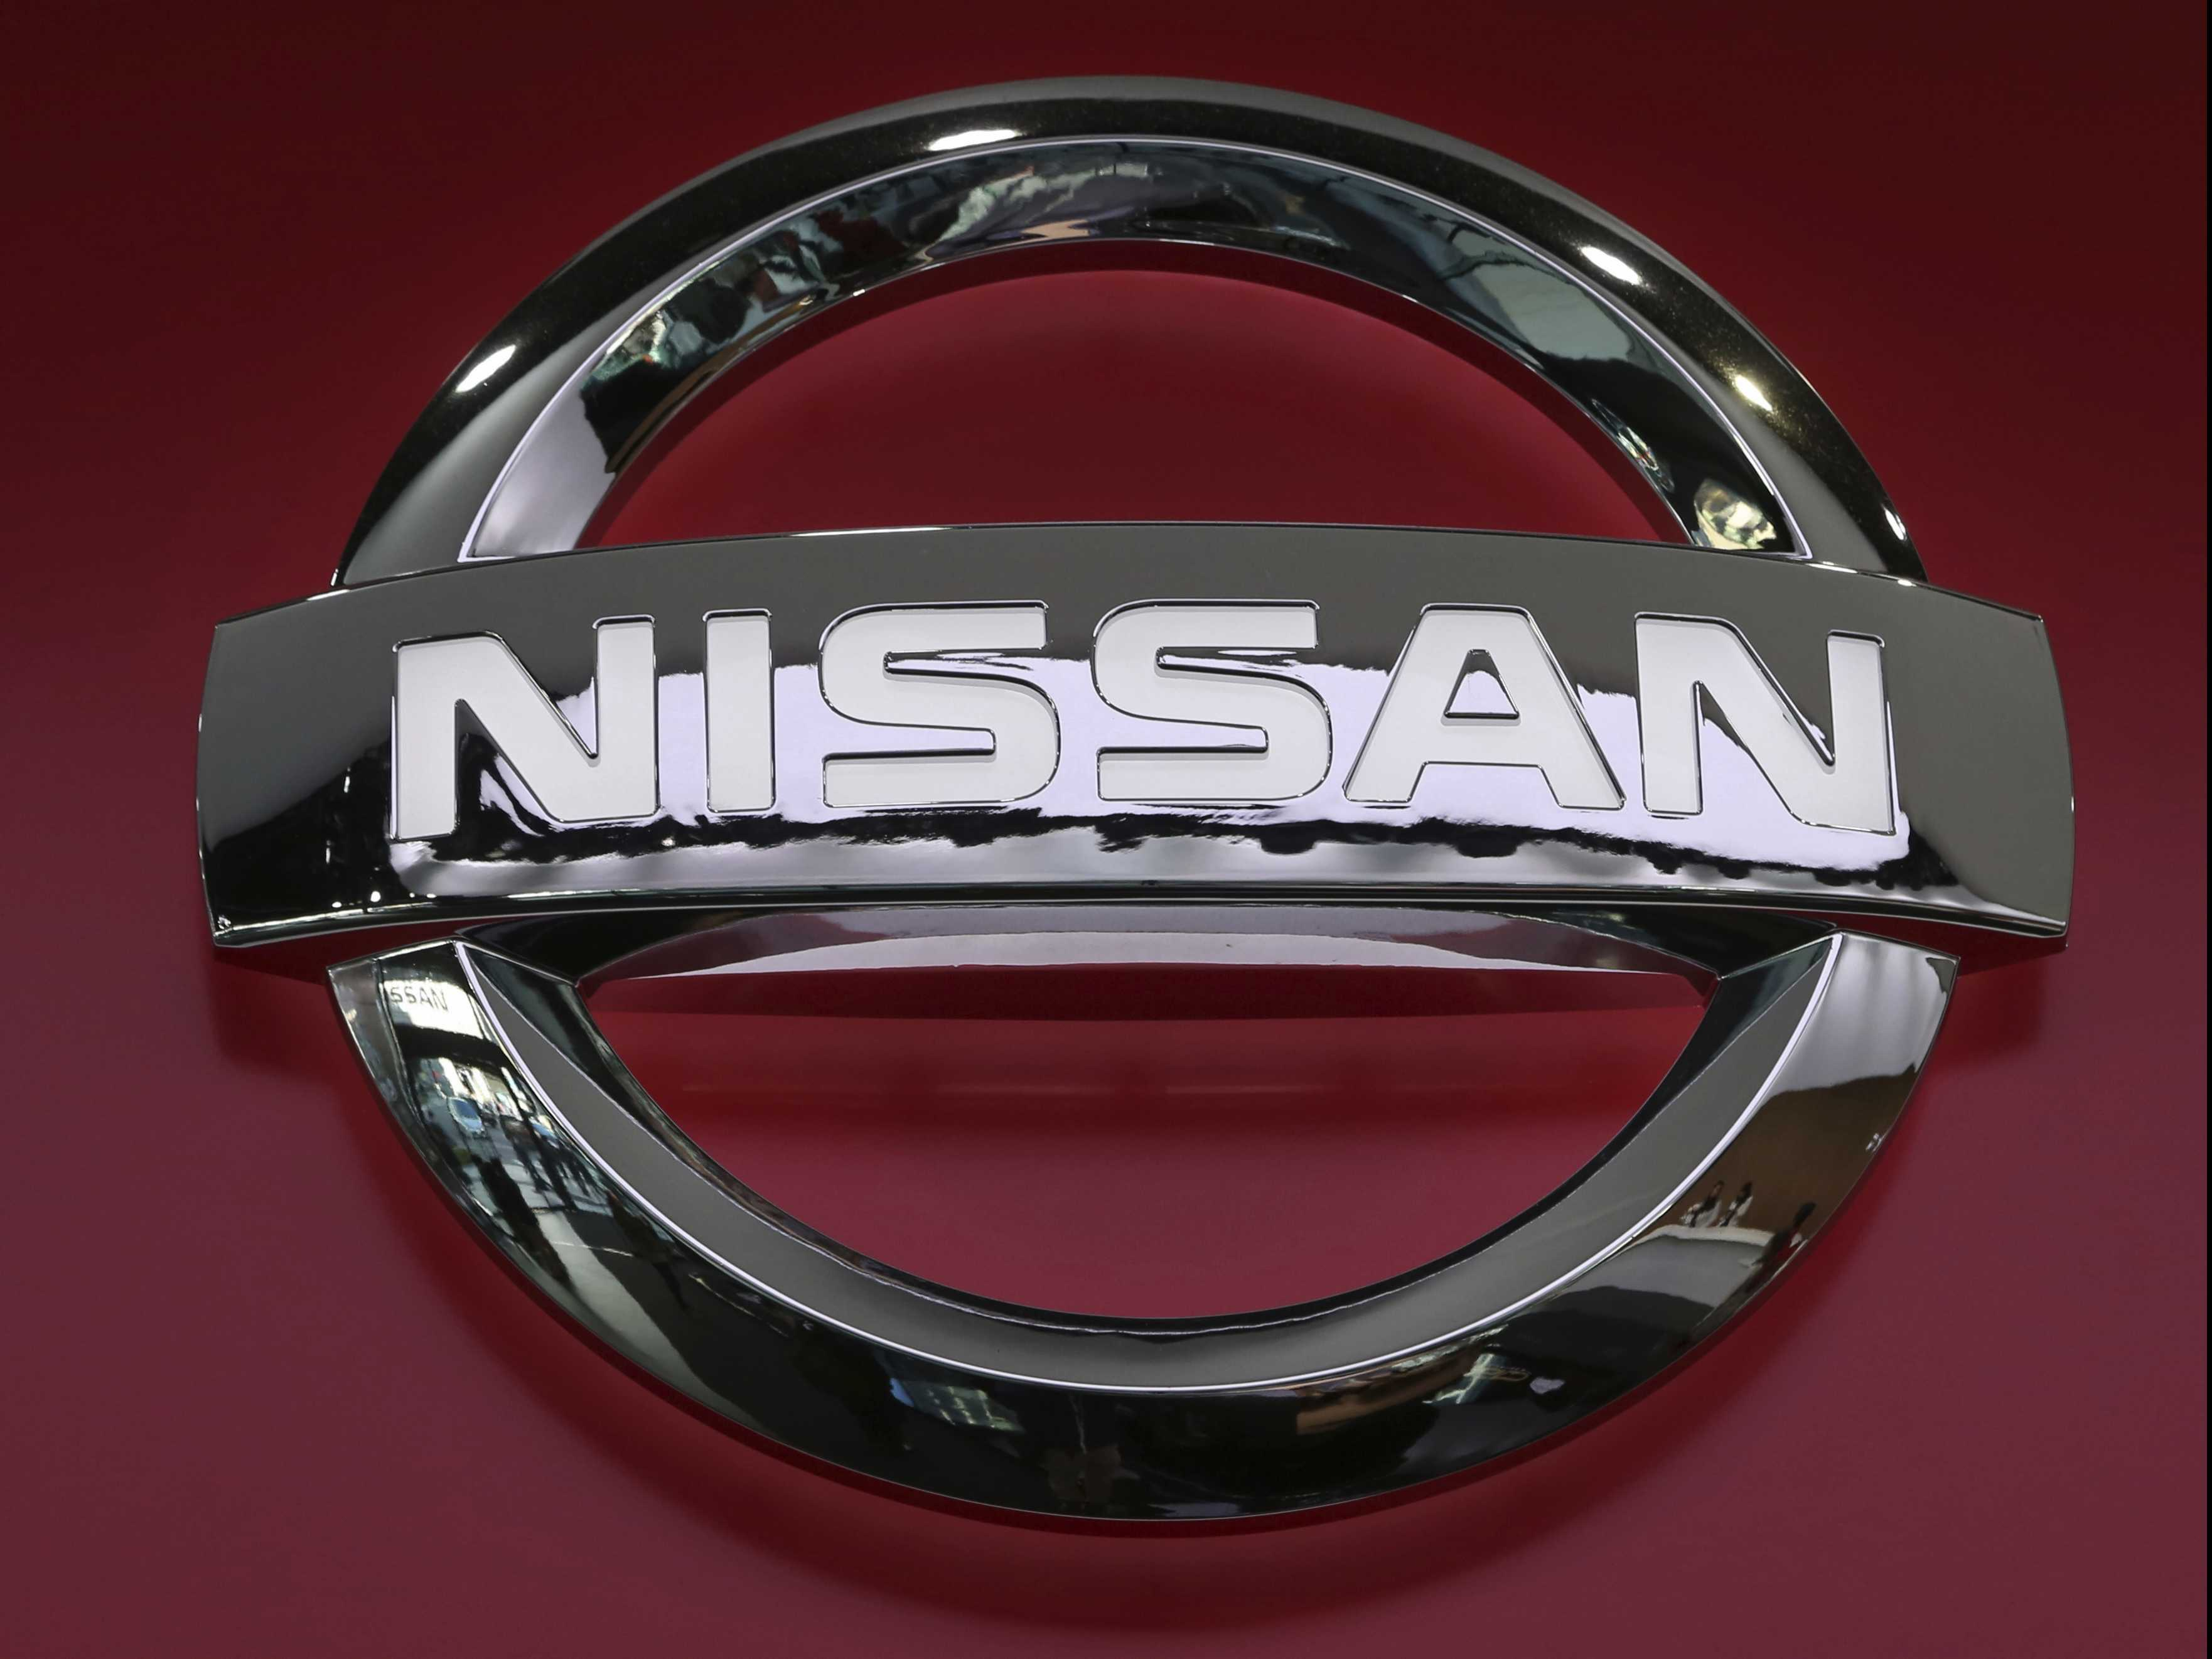 U.S. Probing Suspension Part Failures in 2013 Nissan Altimas